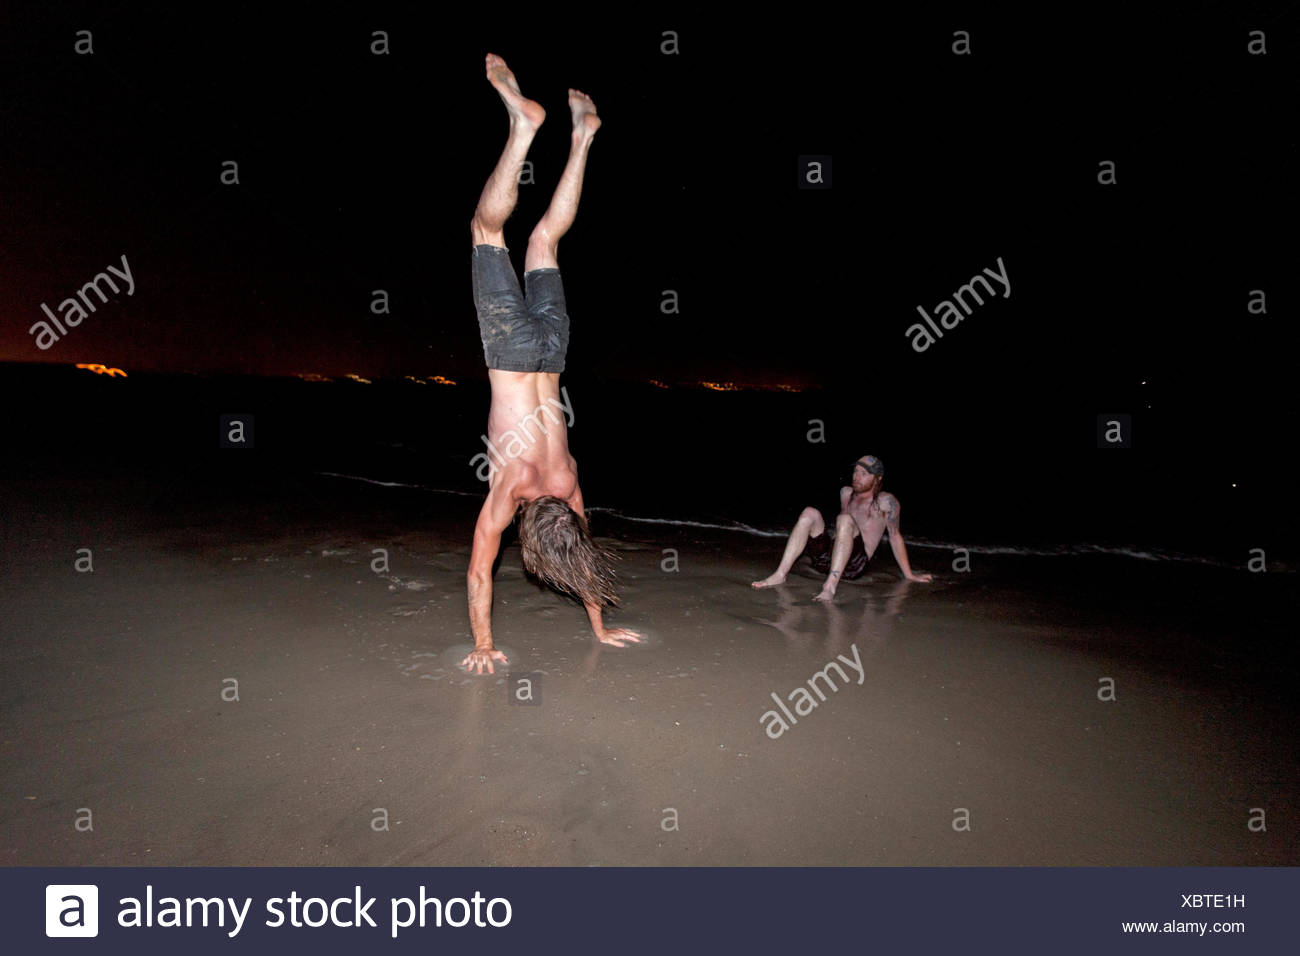 Friends playing on a beach at night - Stock Image